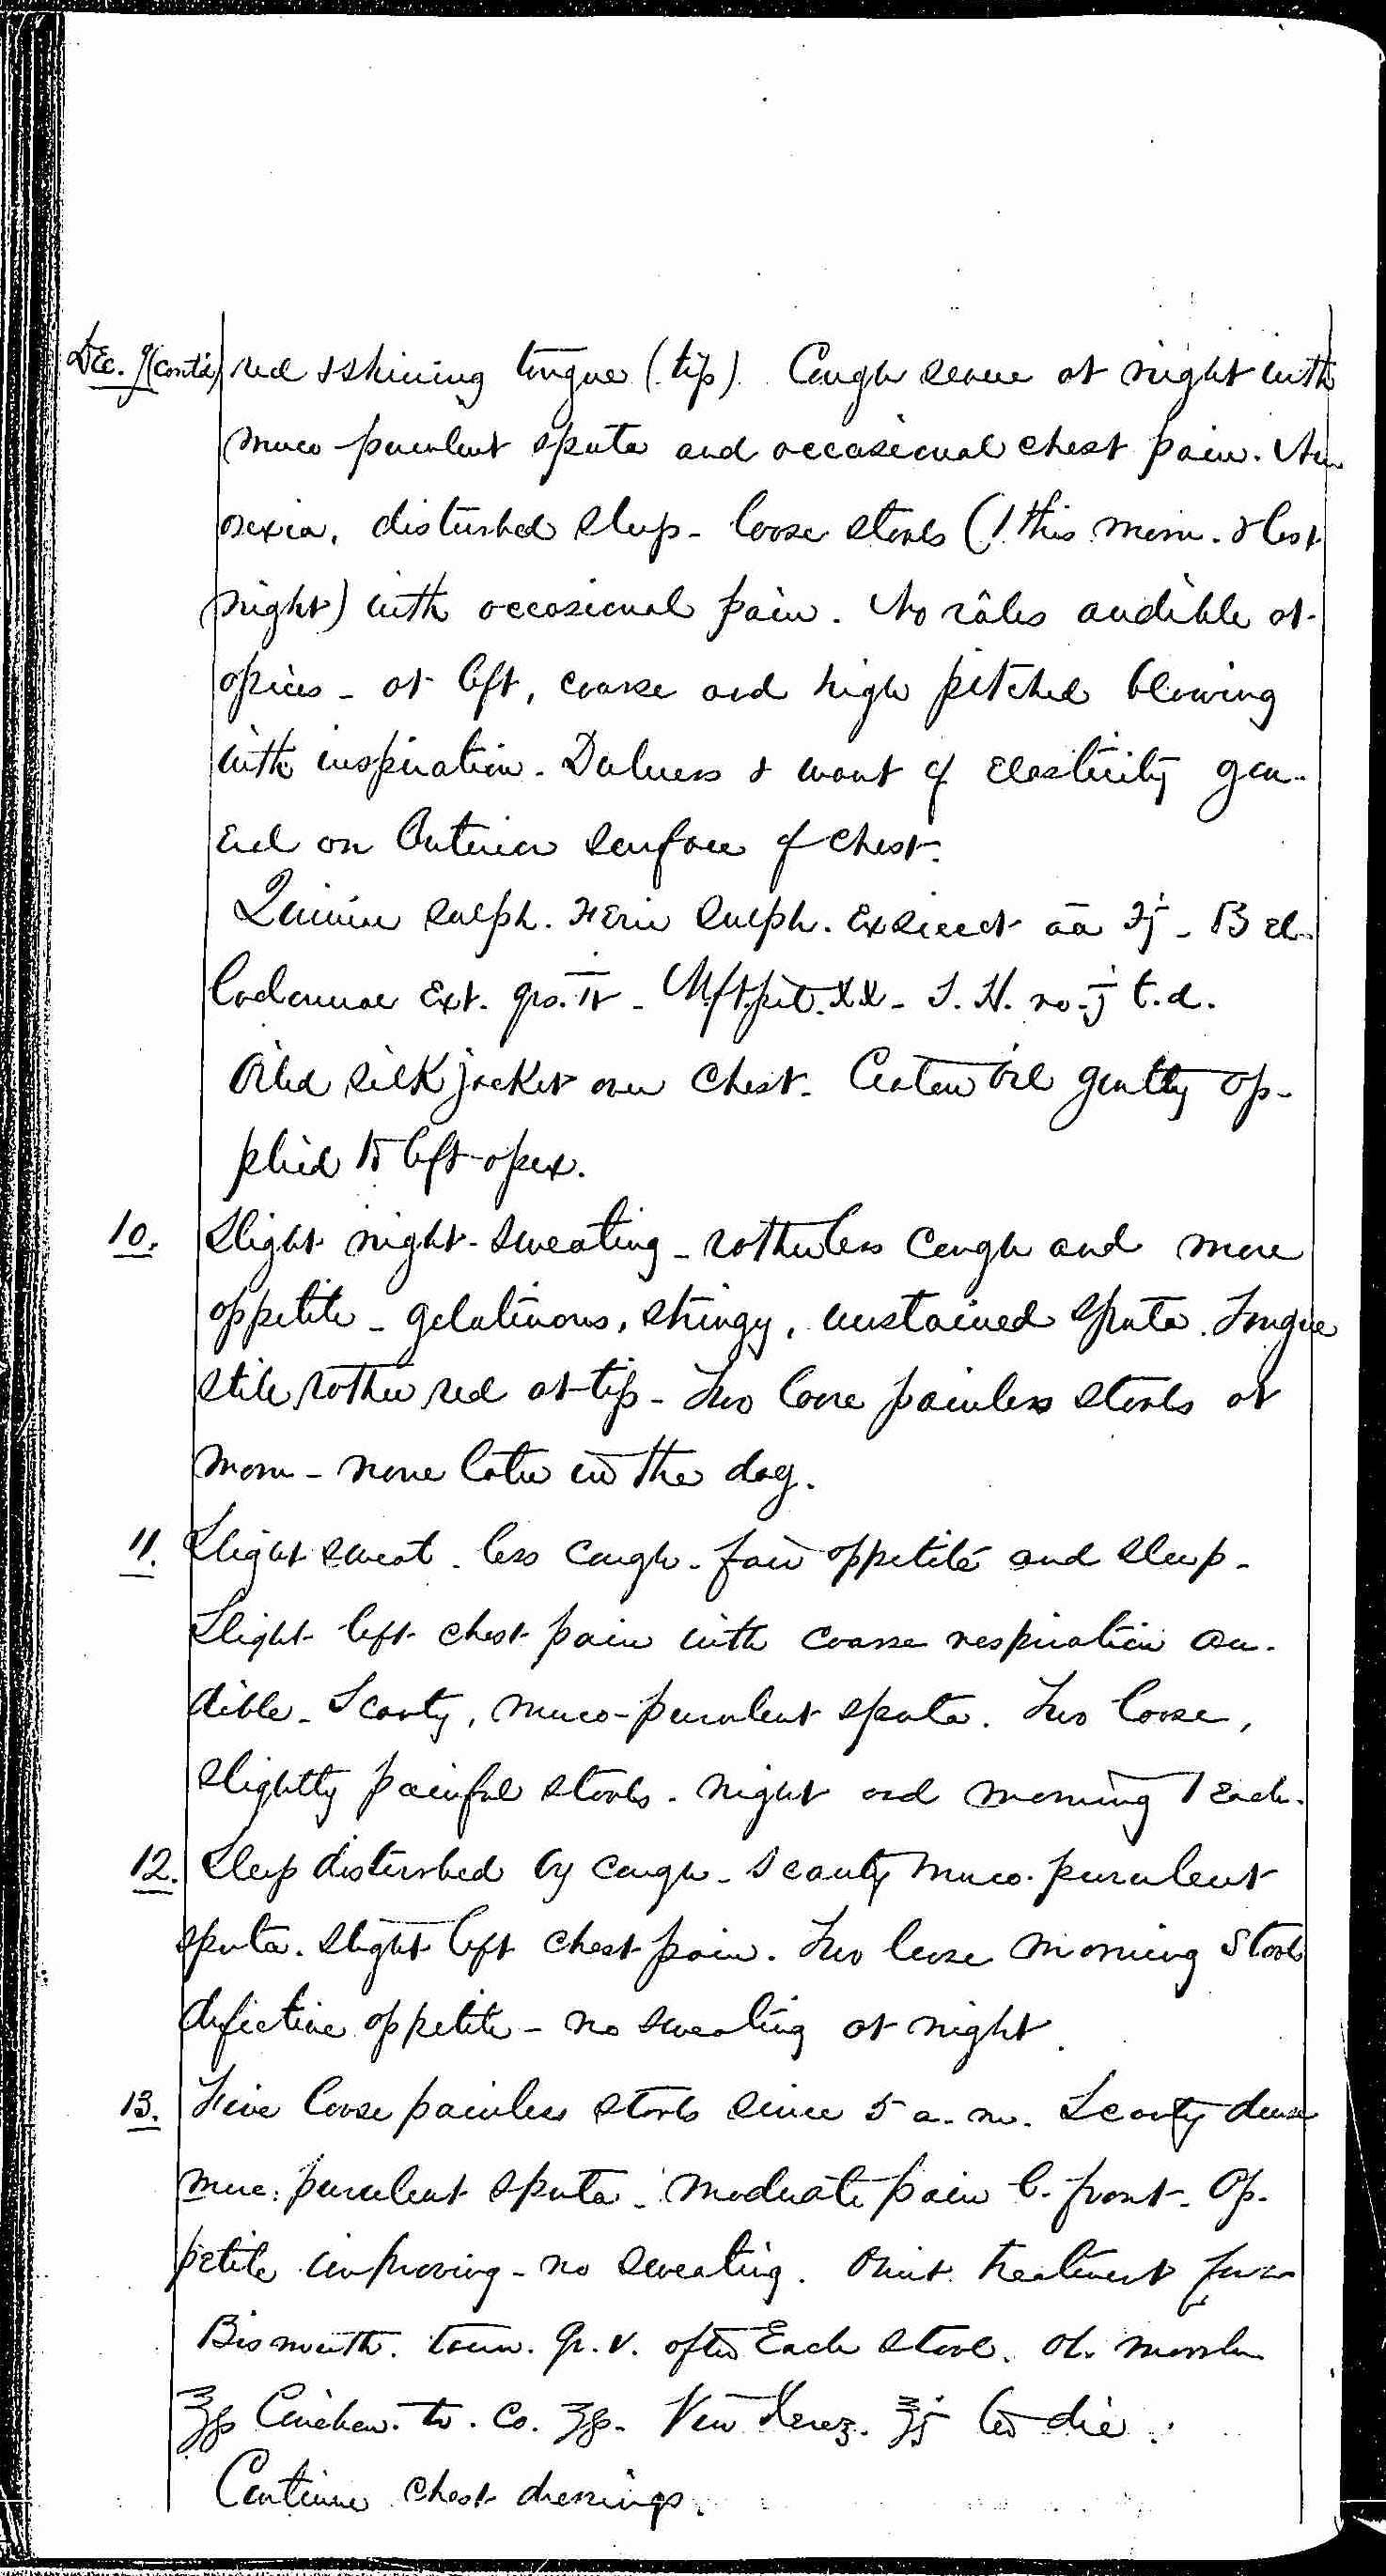 Entry for William Bathwell (page 2 of 13) in the log Hospital Tickets and Case Papers - Naval Hospital - Washington, D.C. - 1868-69